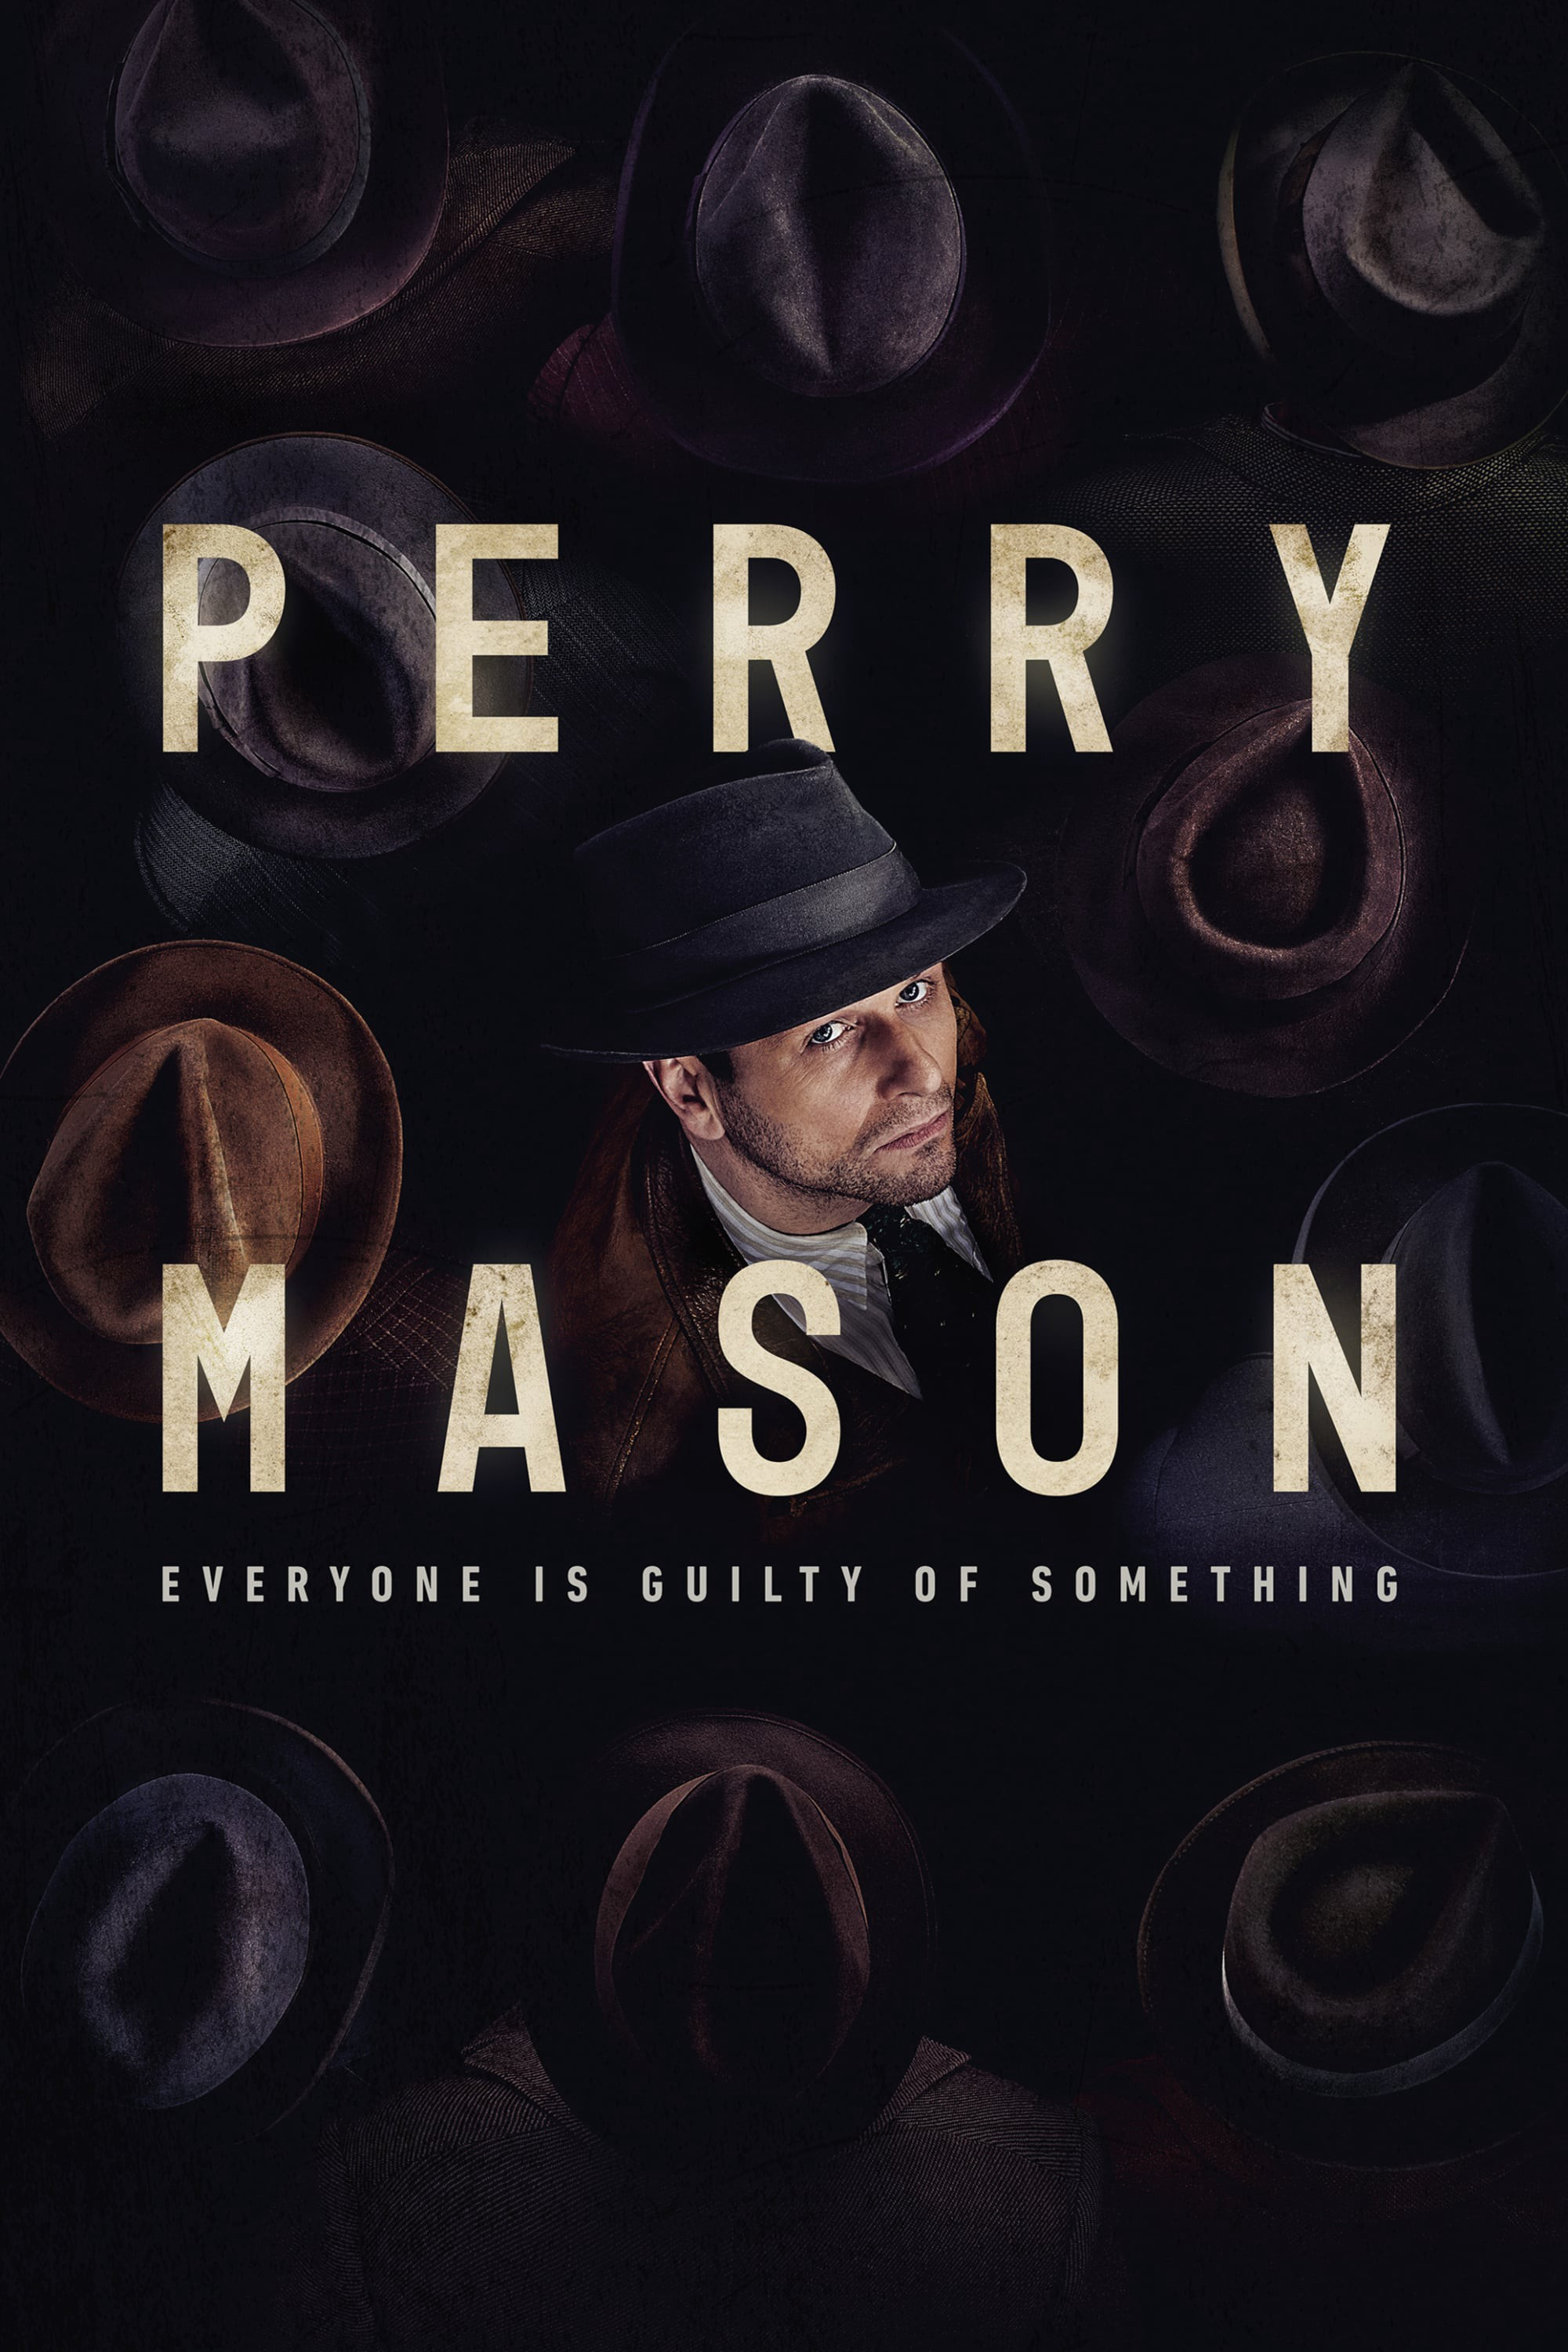 Perry Mason (2020) - Season 1  Episode 1 - Chapter One